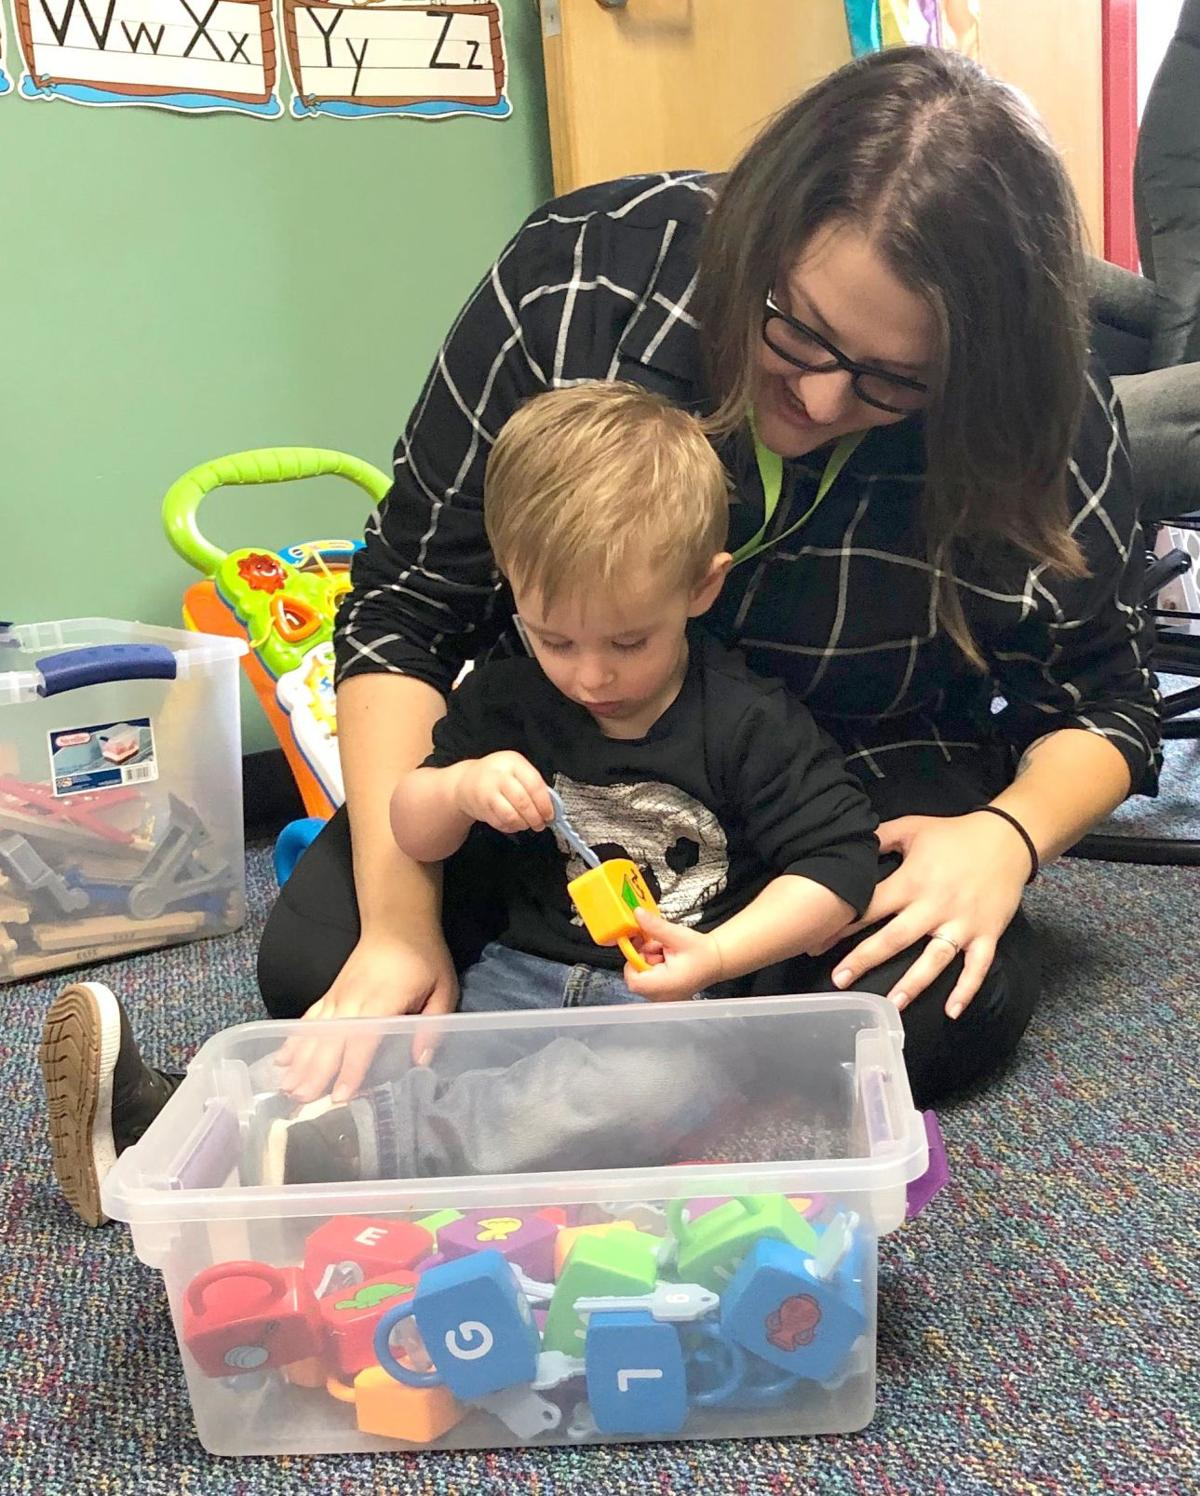 Partnership provides totes and training to benefit kids